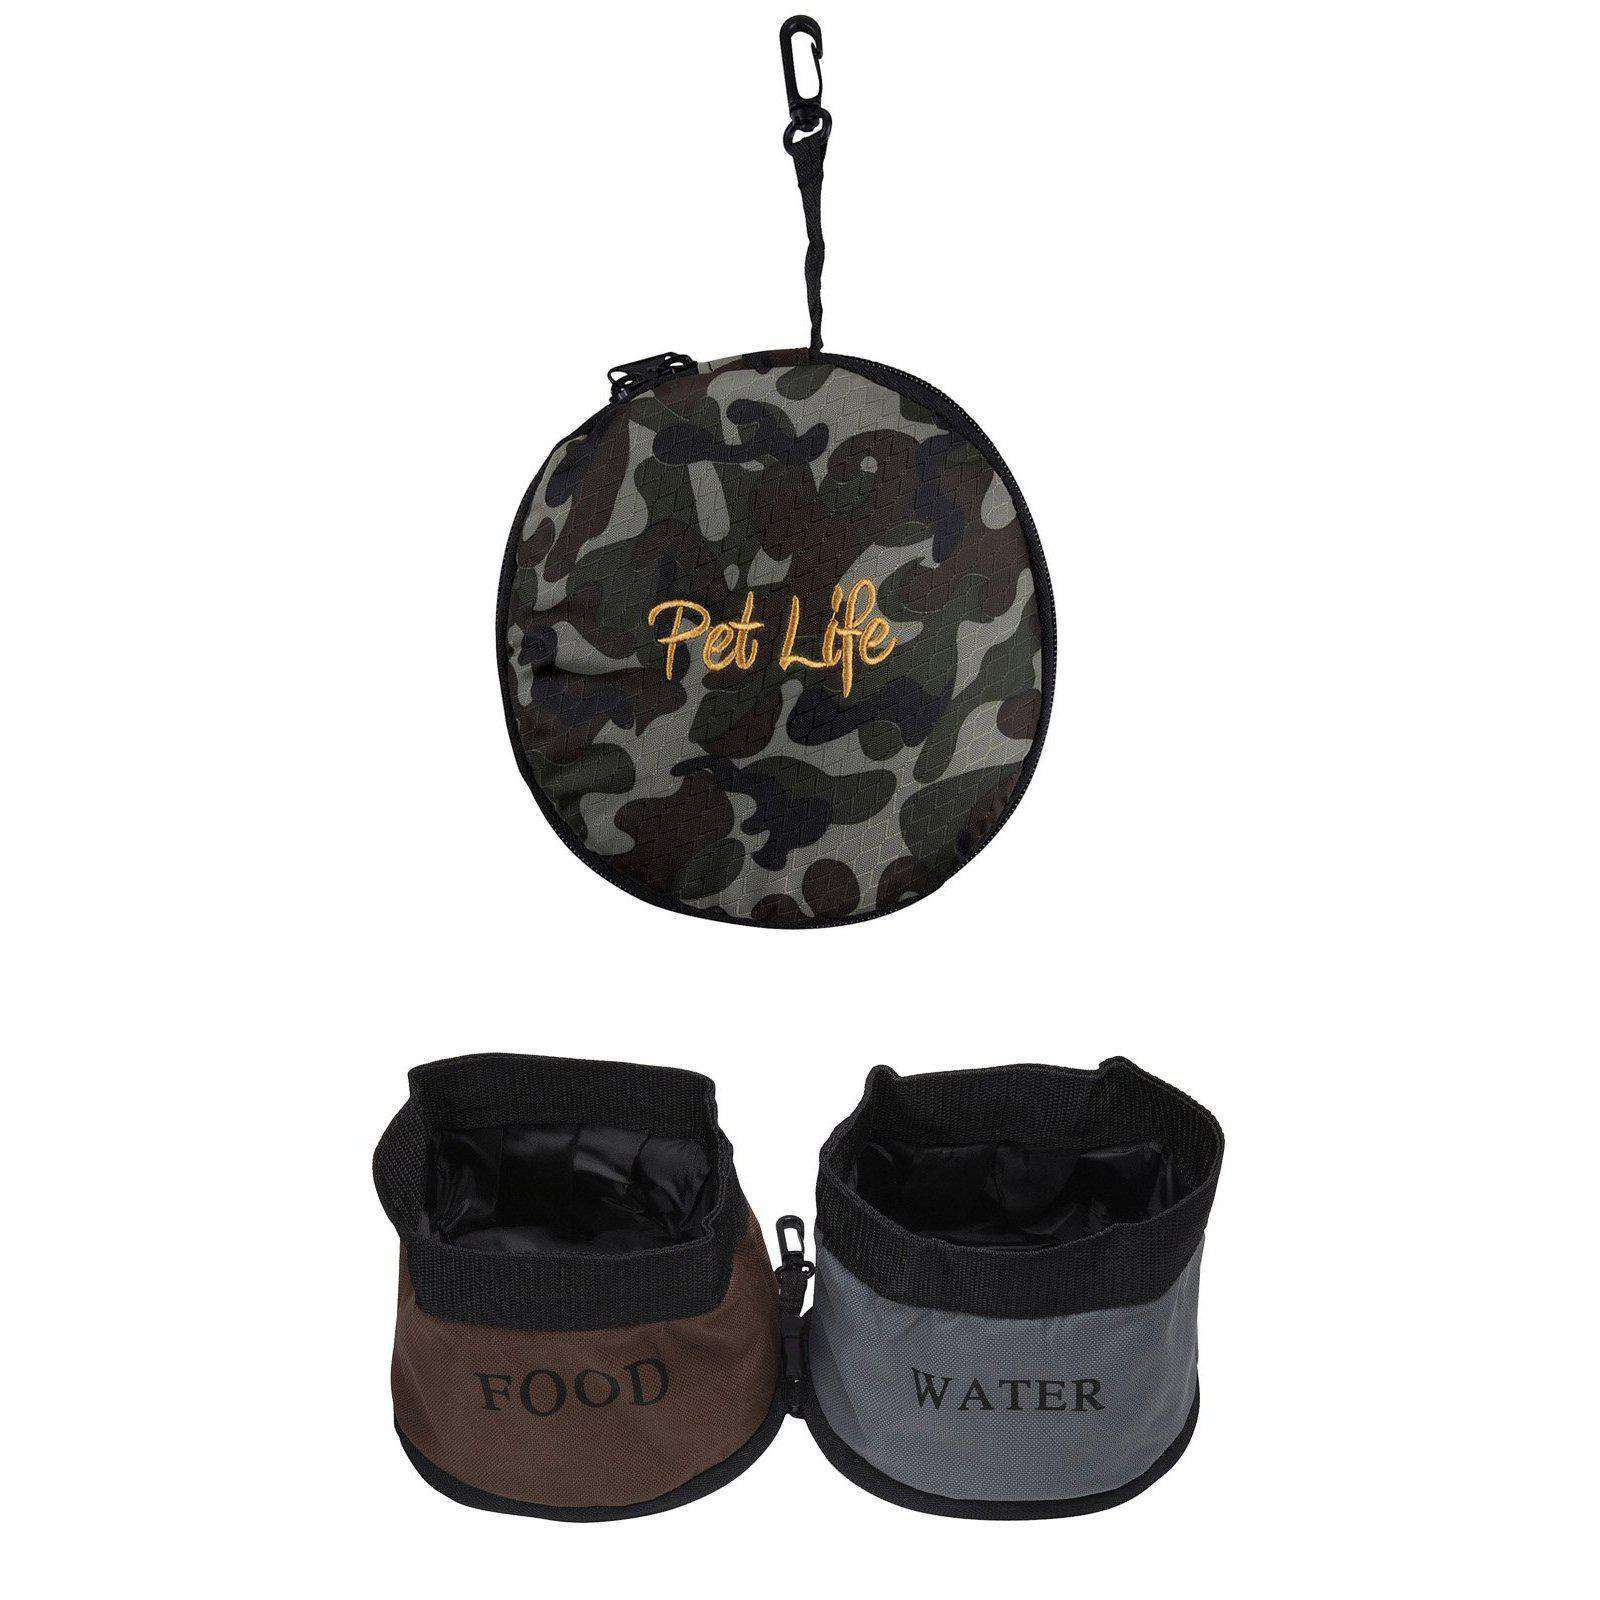 Double Water Travel Pet Bowl- Camouflage-Pet Life-DirtyFurClothing